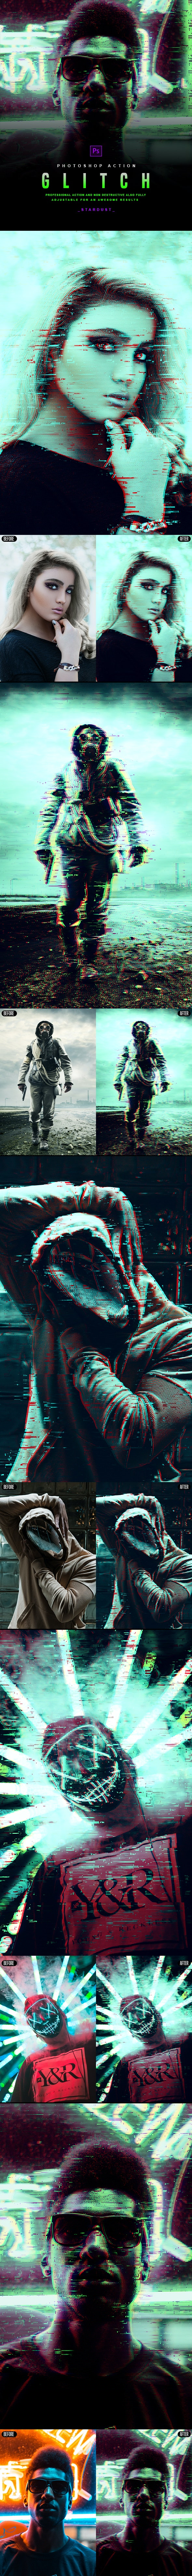 Glitch - Photoshop Action - Photo Effects Actions